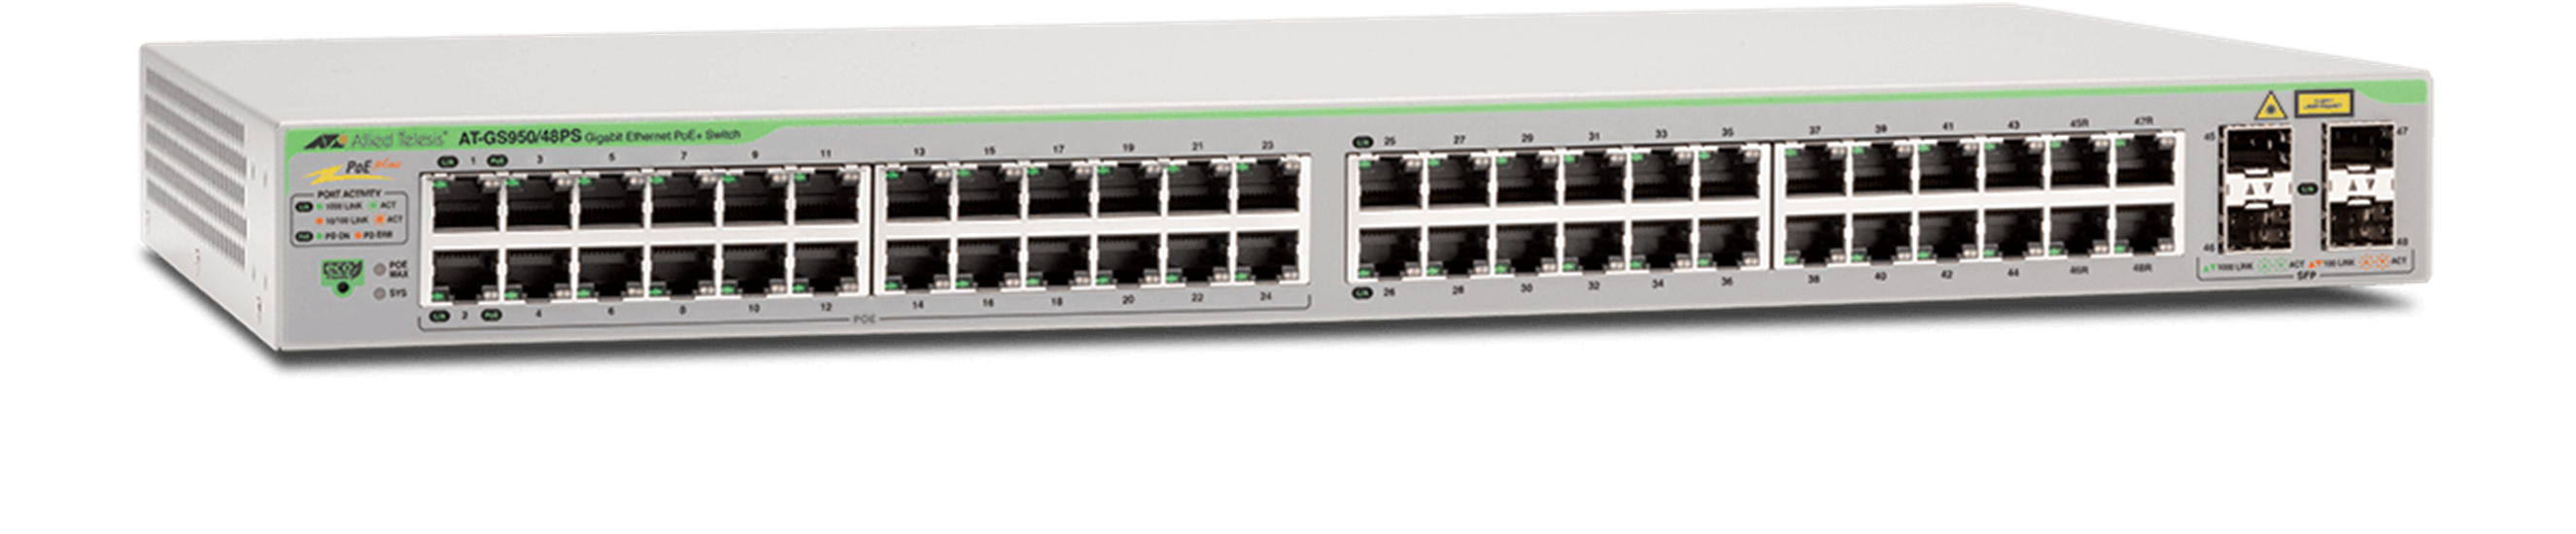 AT-GS950 Series - Layer 2 Websmart Gigabit Switch